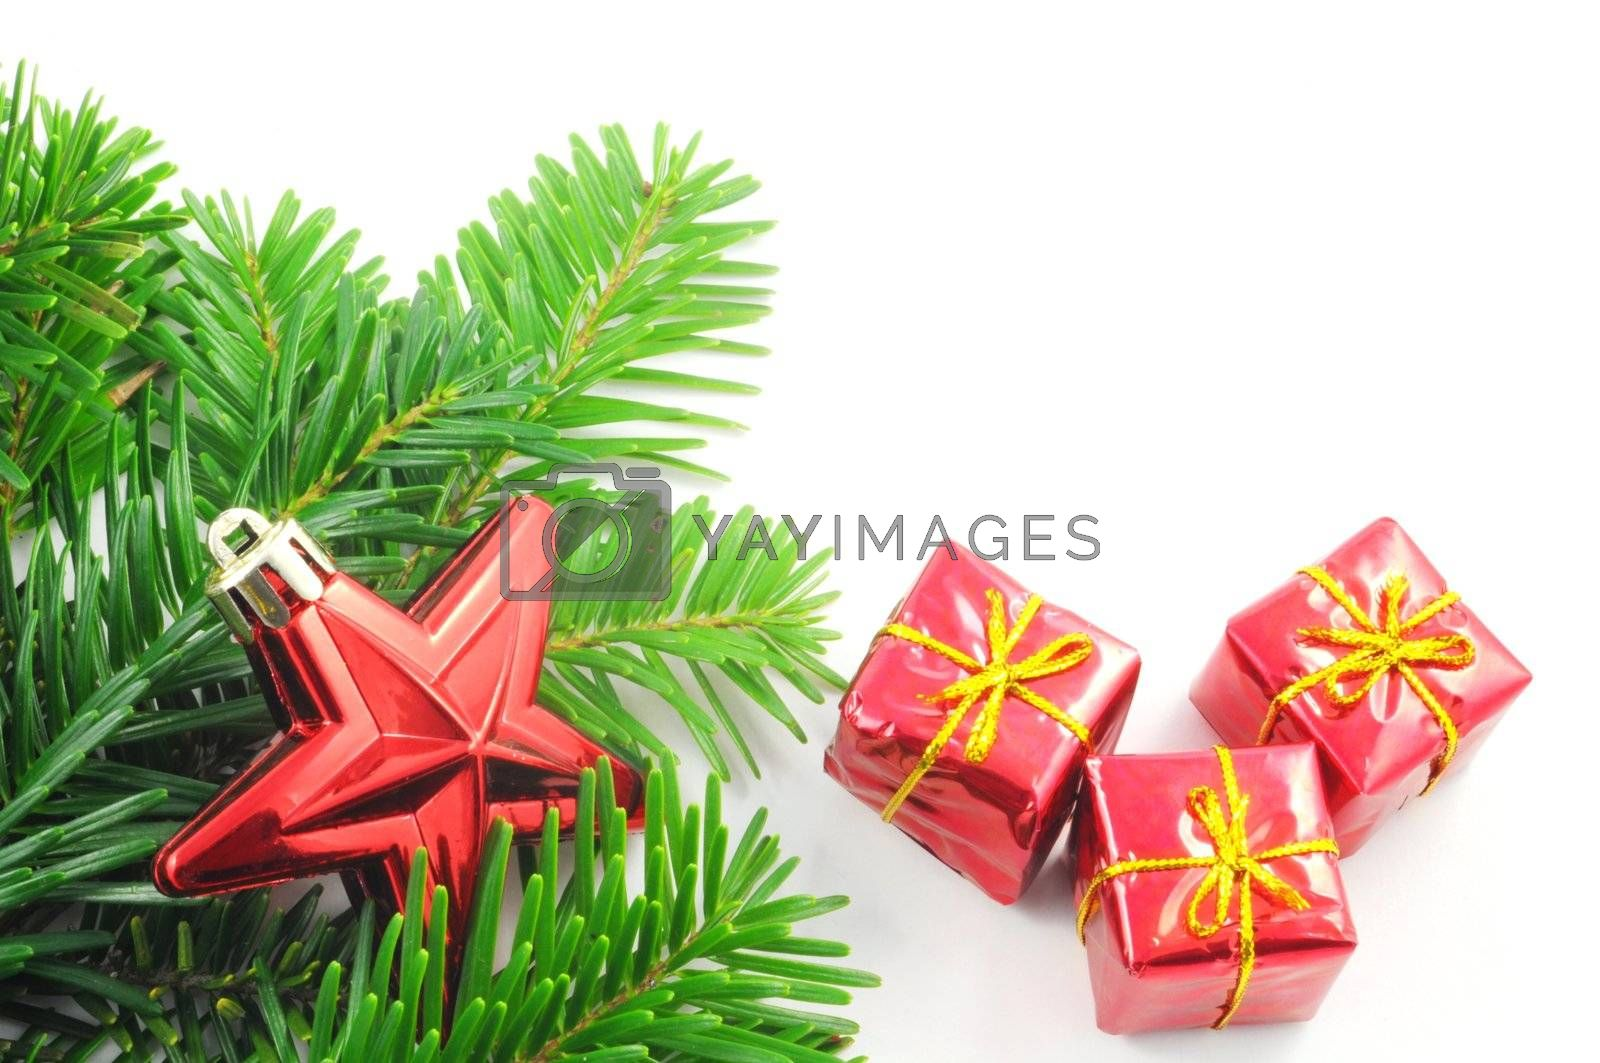 xmas or christmas card with white copyspace for text message